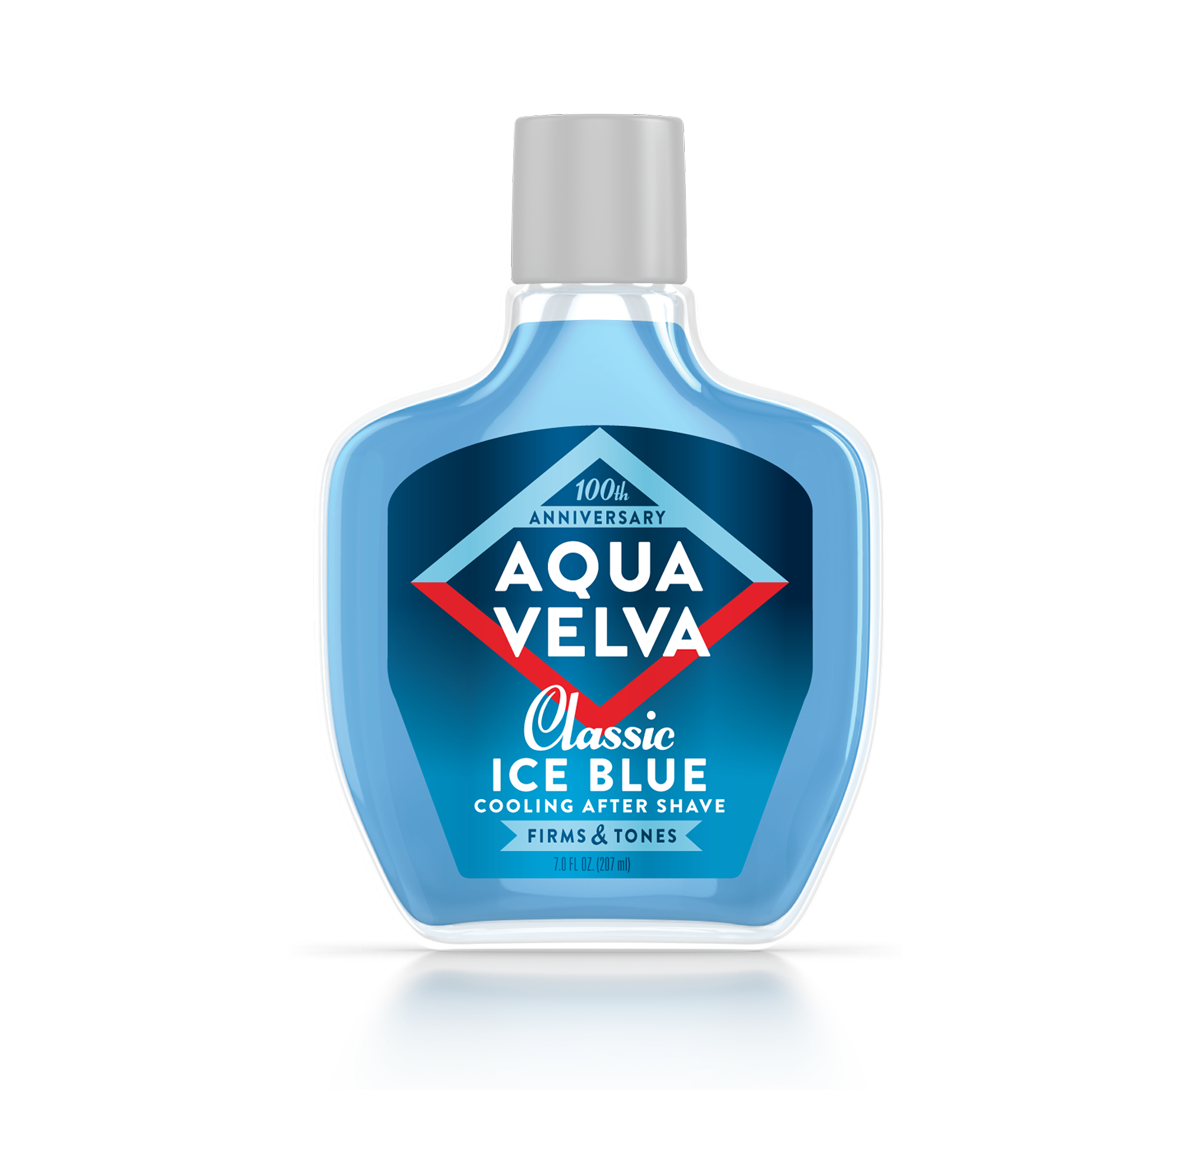 Aqua Velva - Ice Blue - Aftershave image